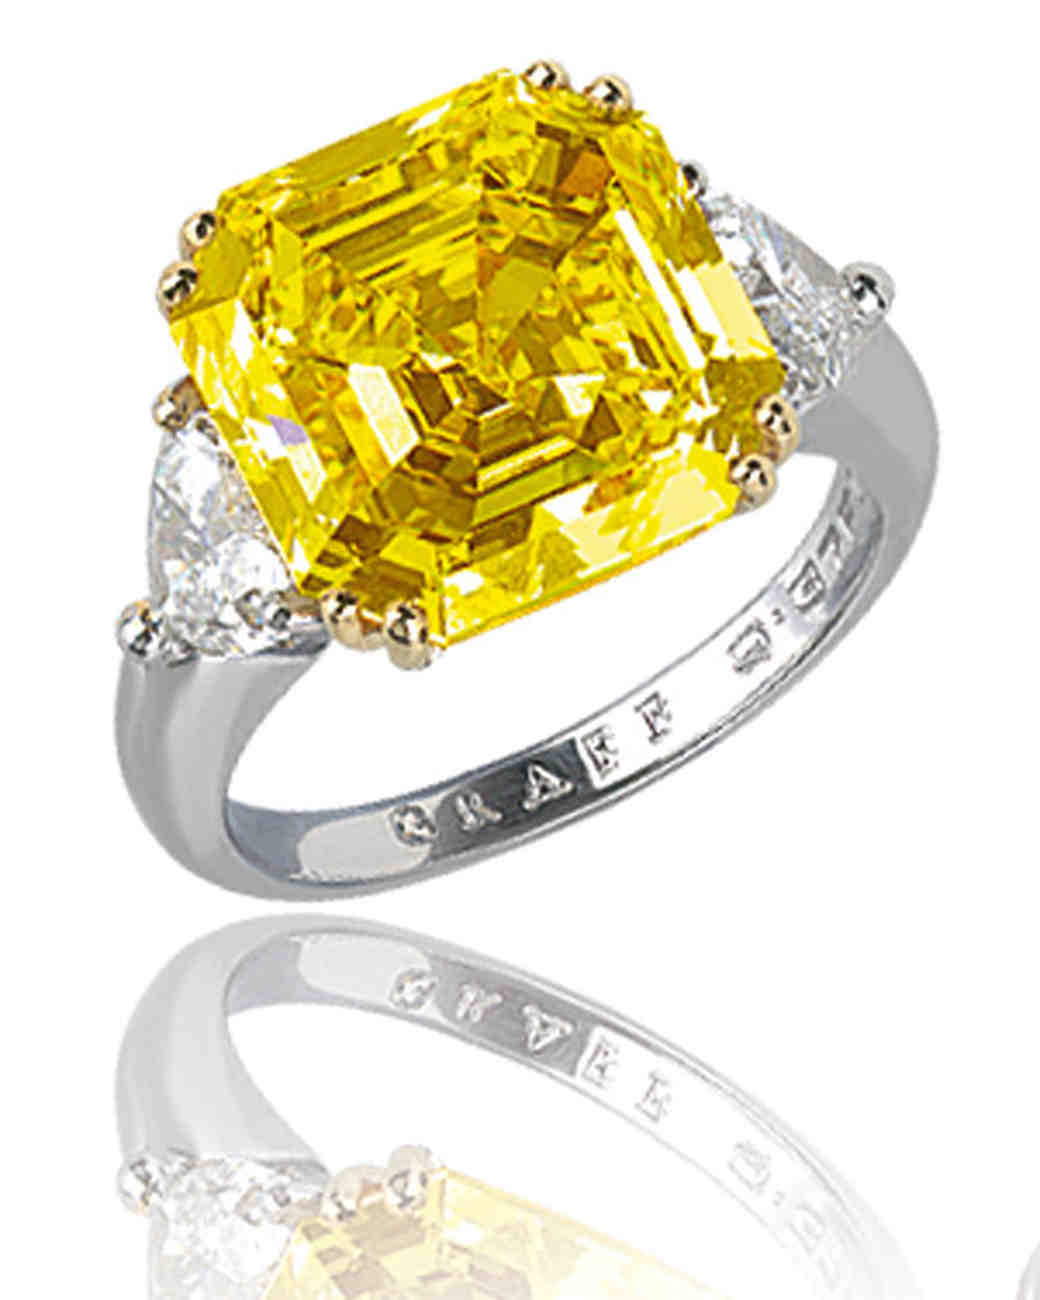 Yellow Asscher-Cut Diamond Engagement Ring on Platinum Band